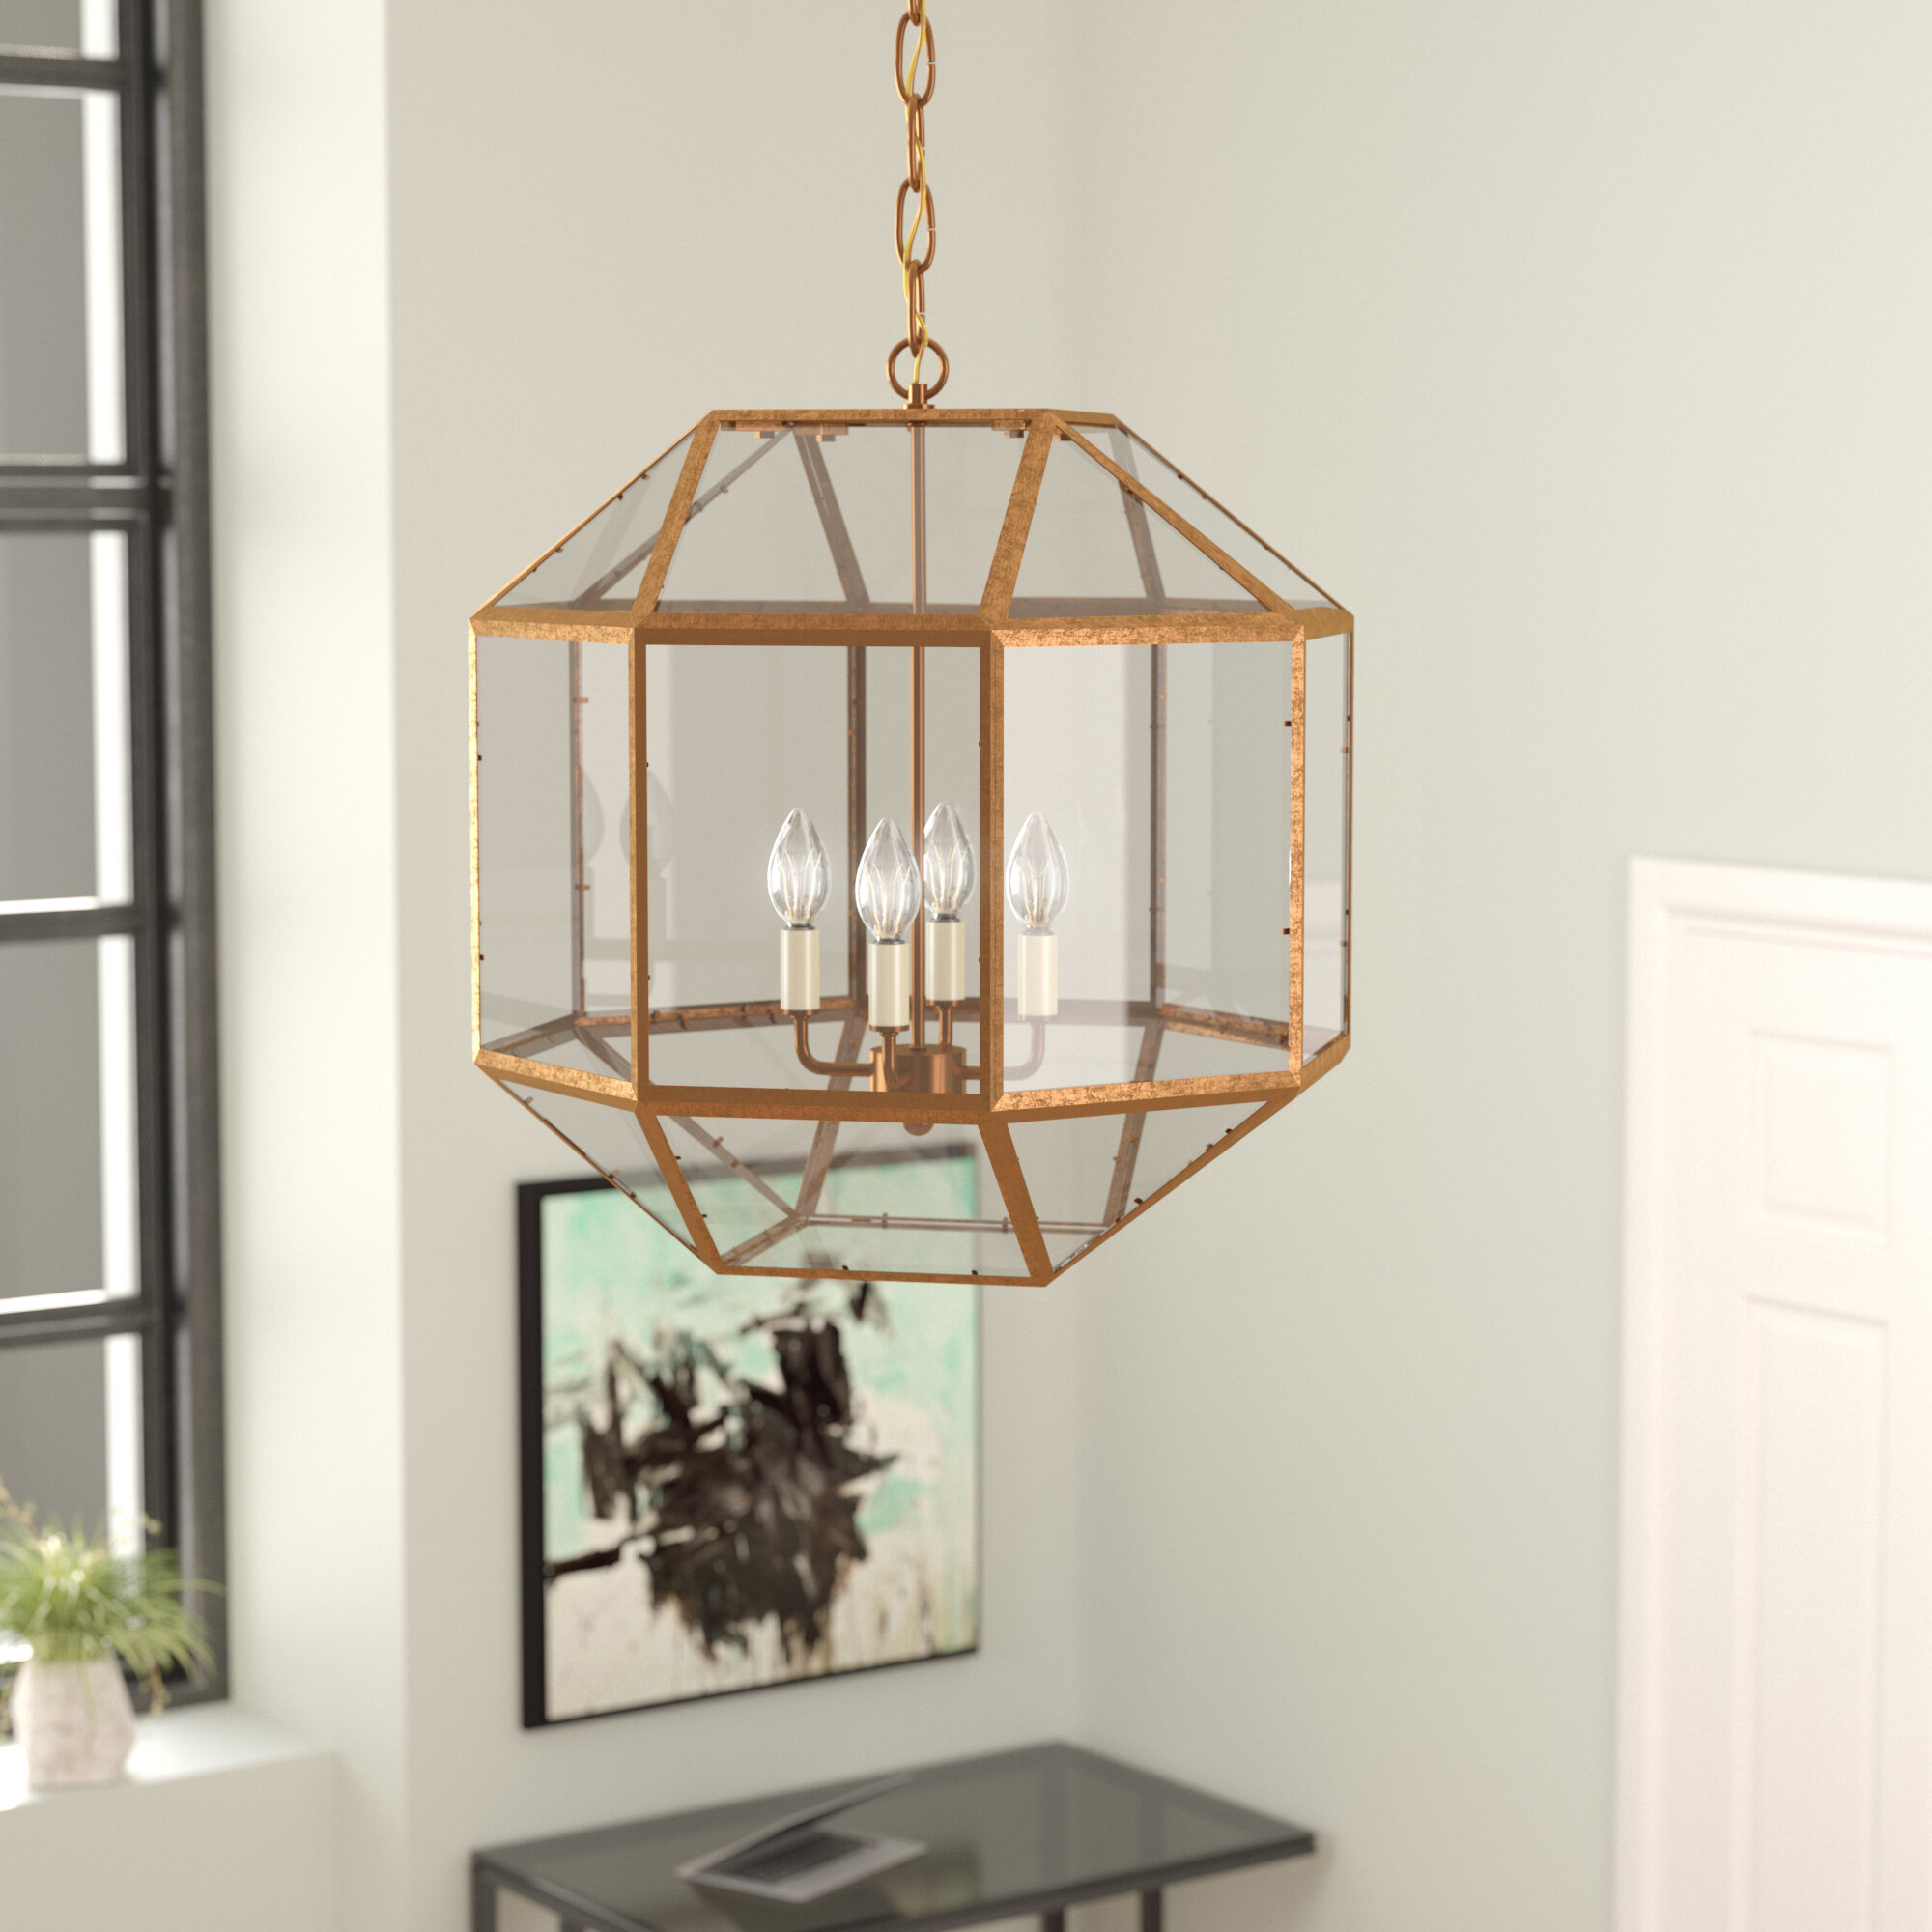 Ivy Bronx Burkeville 4 Light Geometric Chandelier Reviews Wayfair How To Install A Stylish